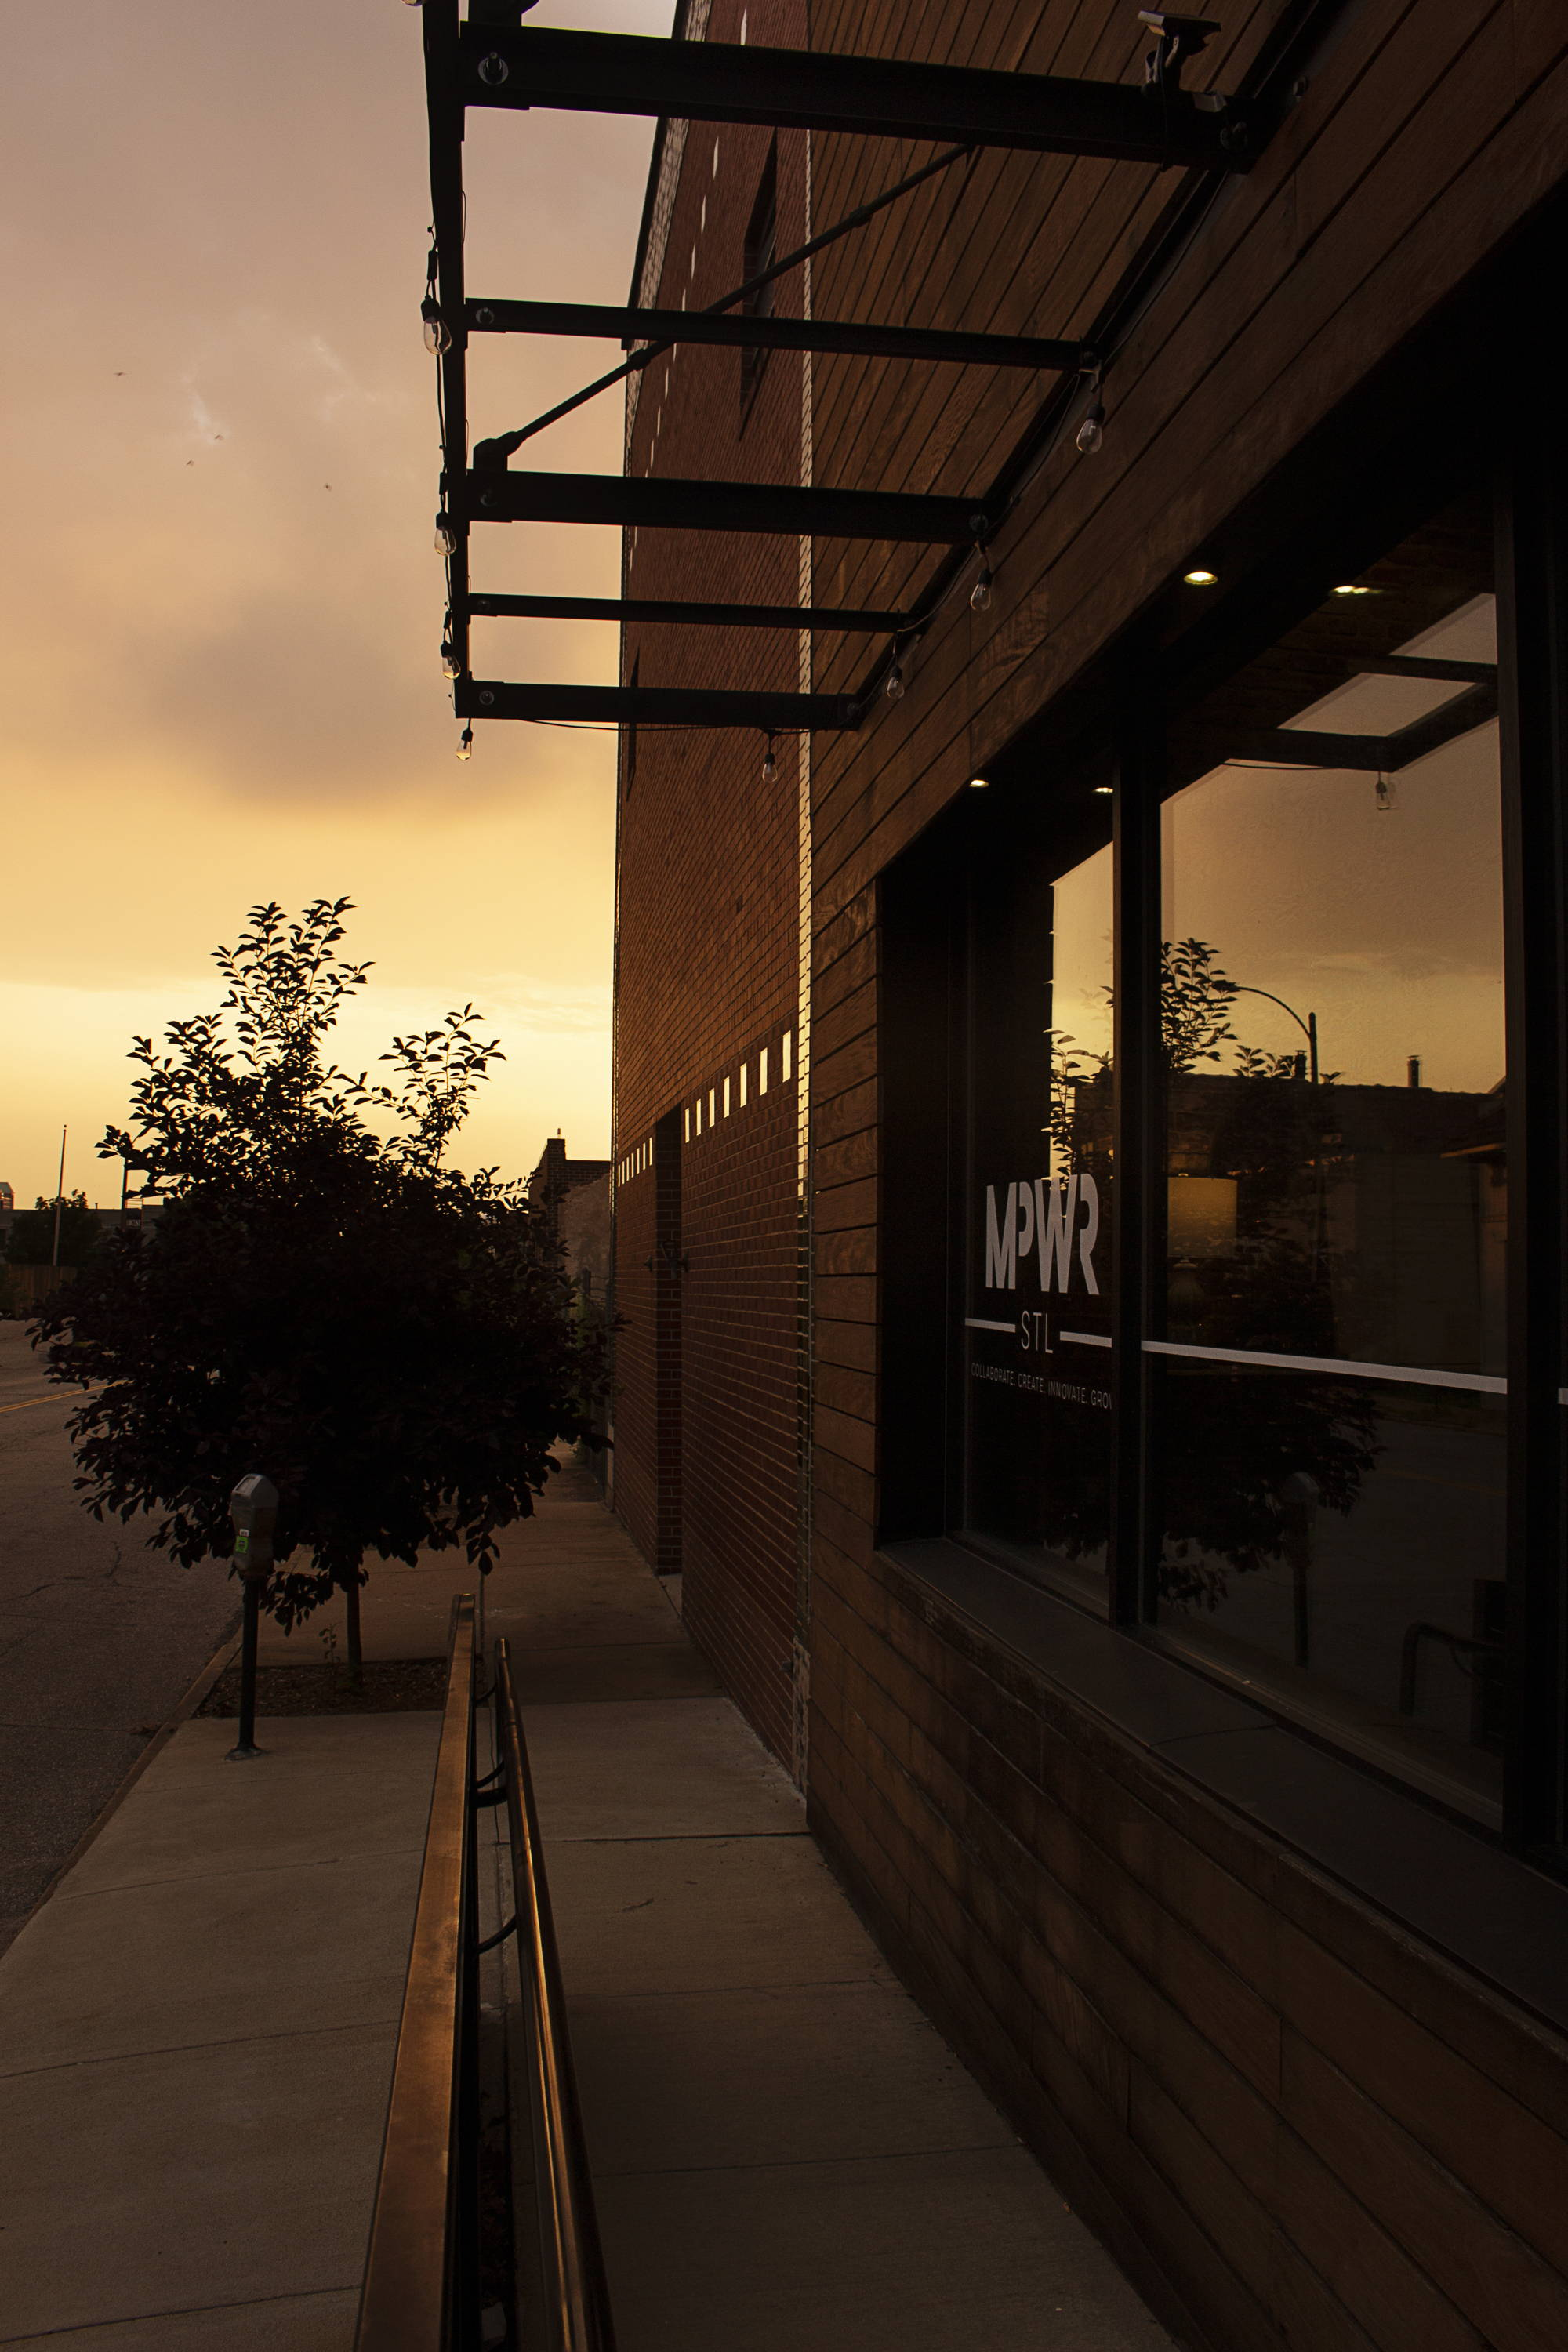 mpwr stl, women's only co-working space in stl